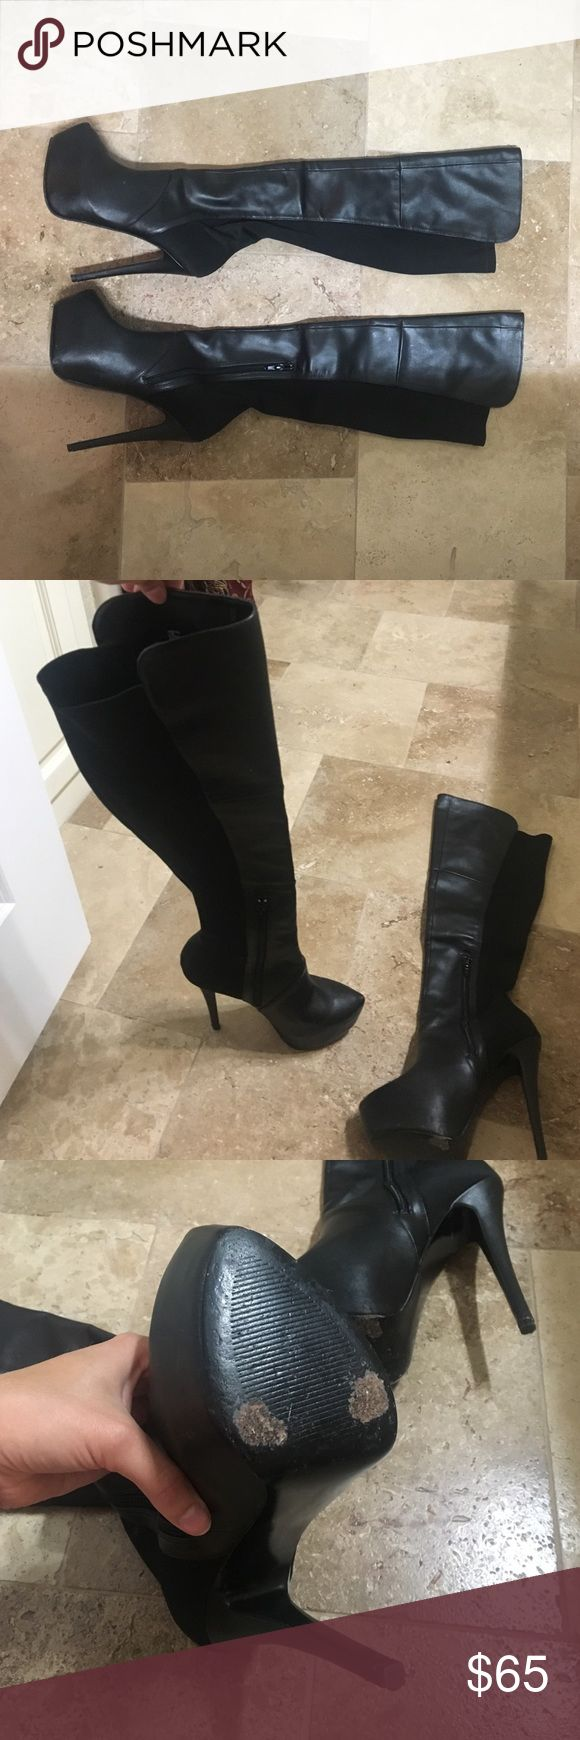 Over the knee black boots Over the knee black boots (high pumps) Steve Madden Shoes Over the Knee Boots